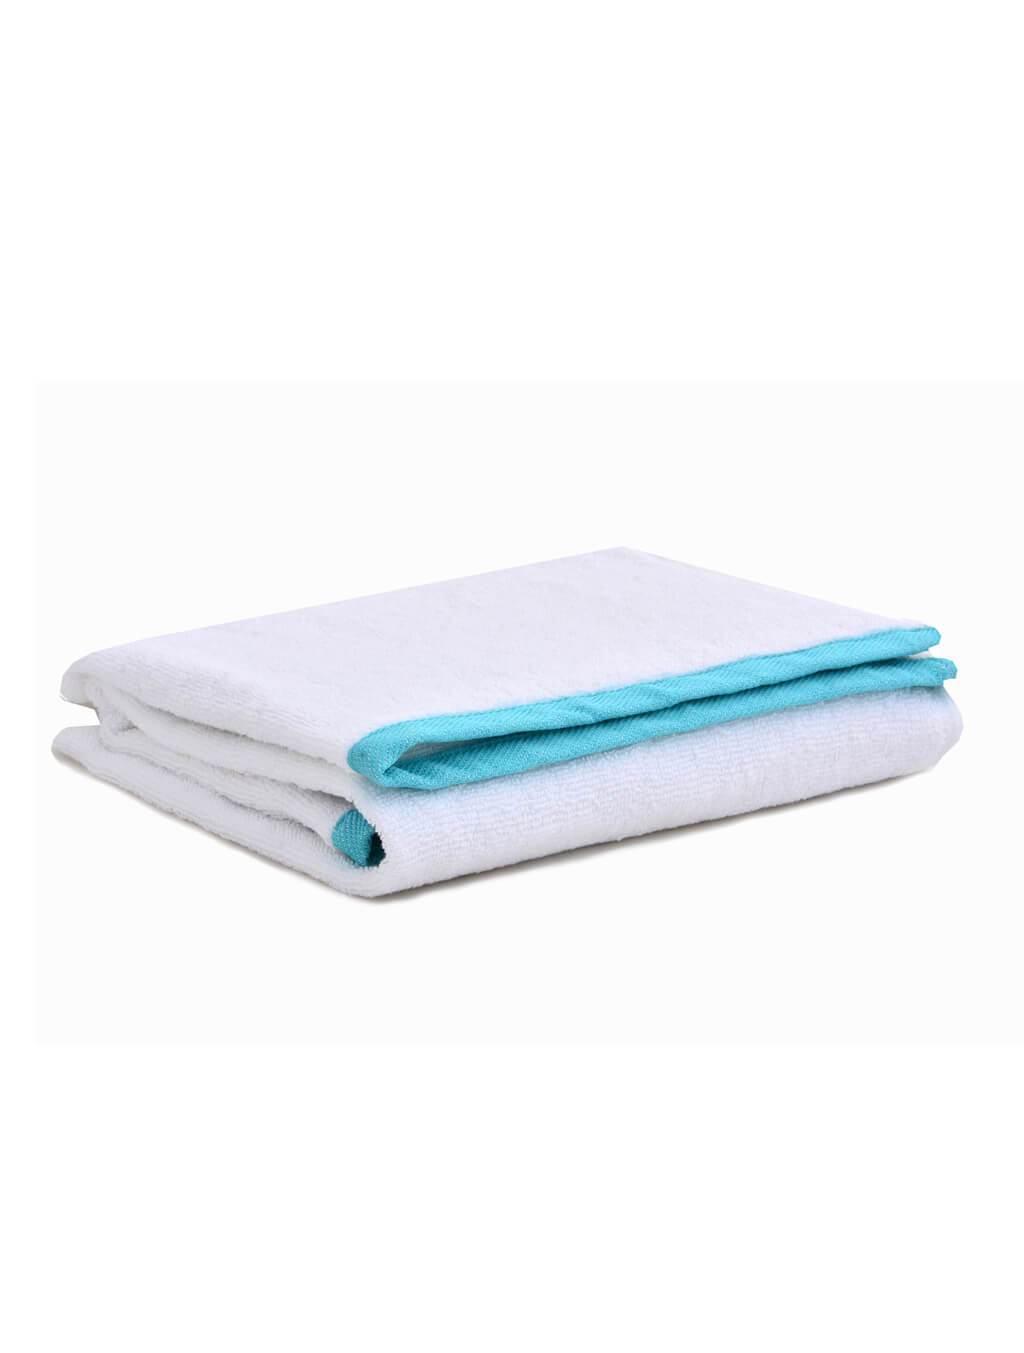 Hand Towel White Towels HOMBATTOW